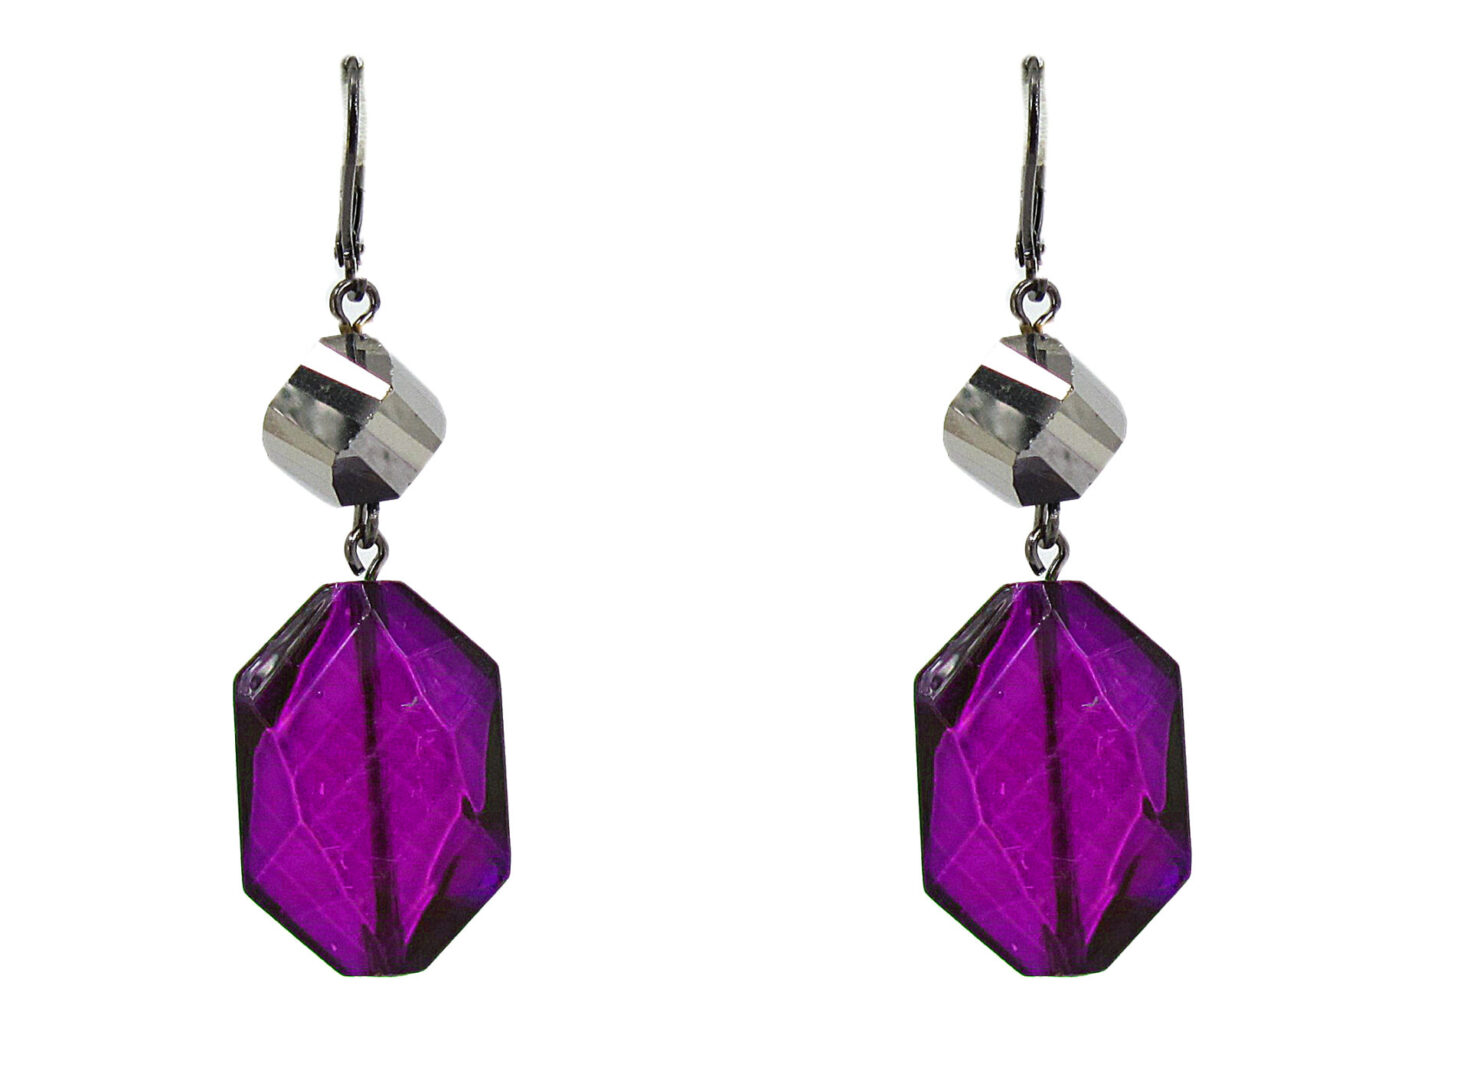 earrings with octagonal deep violet crystals